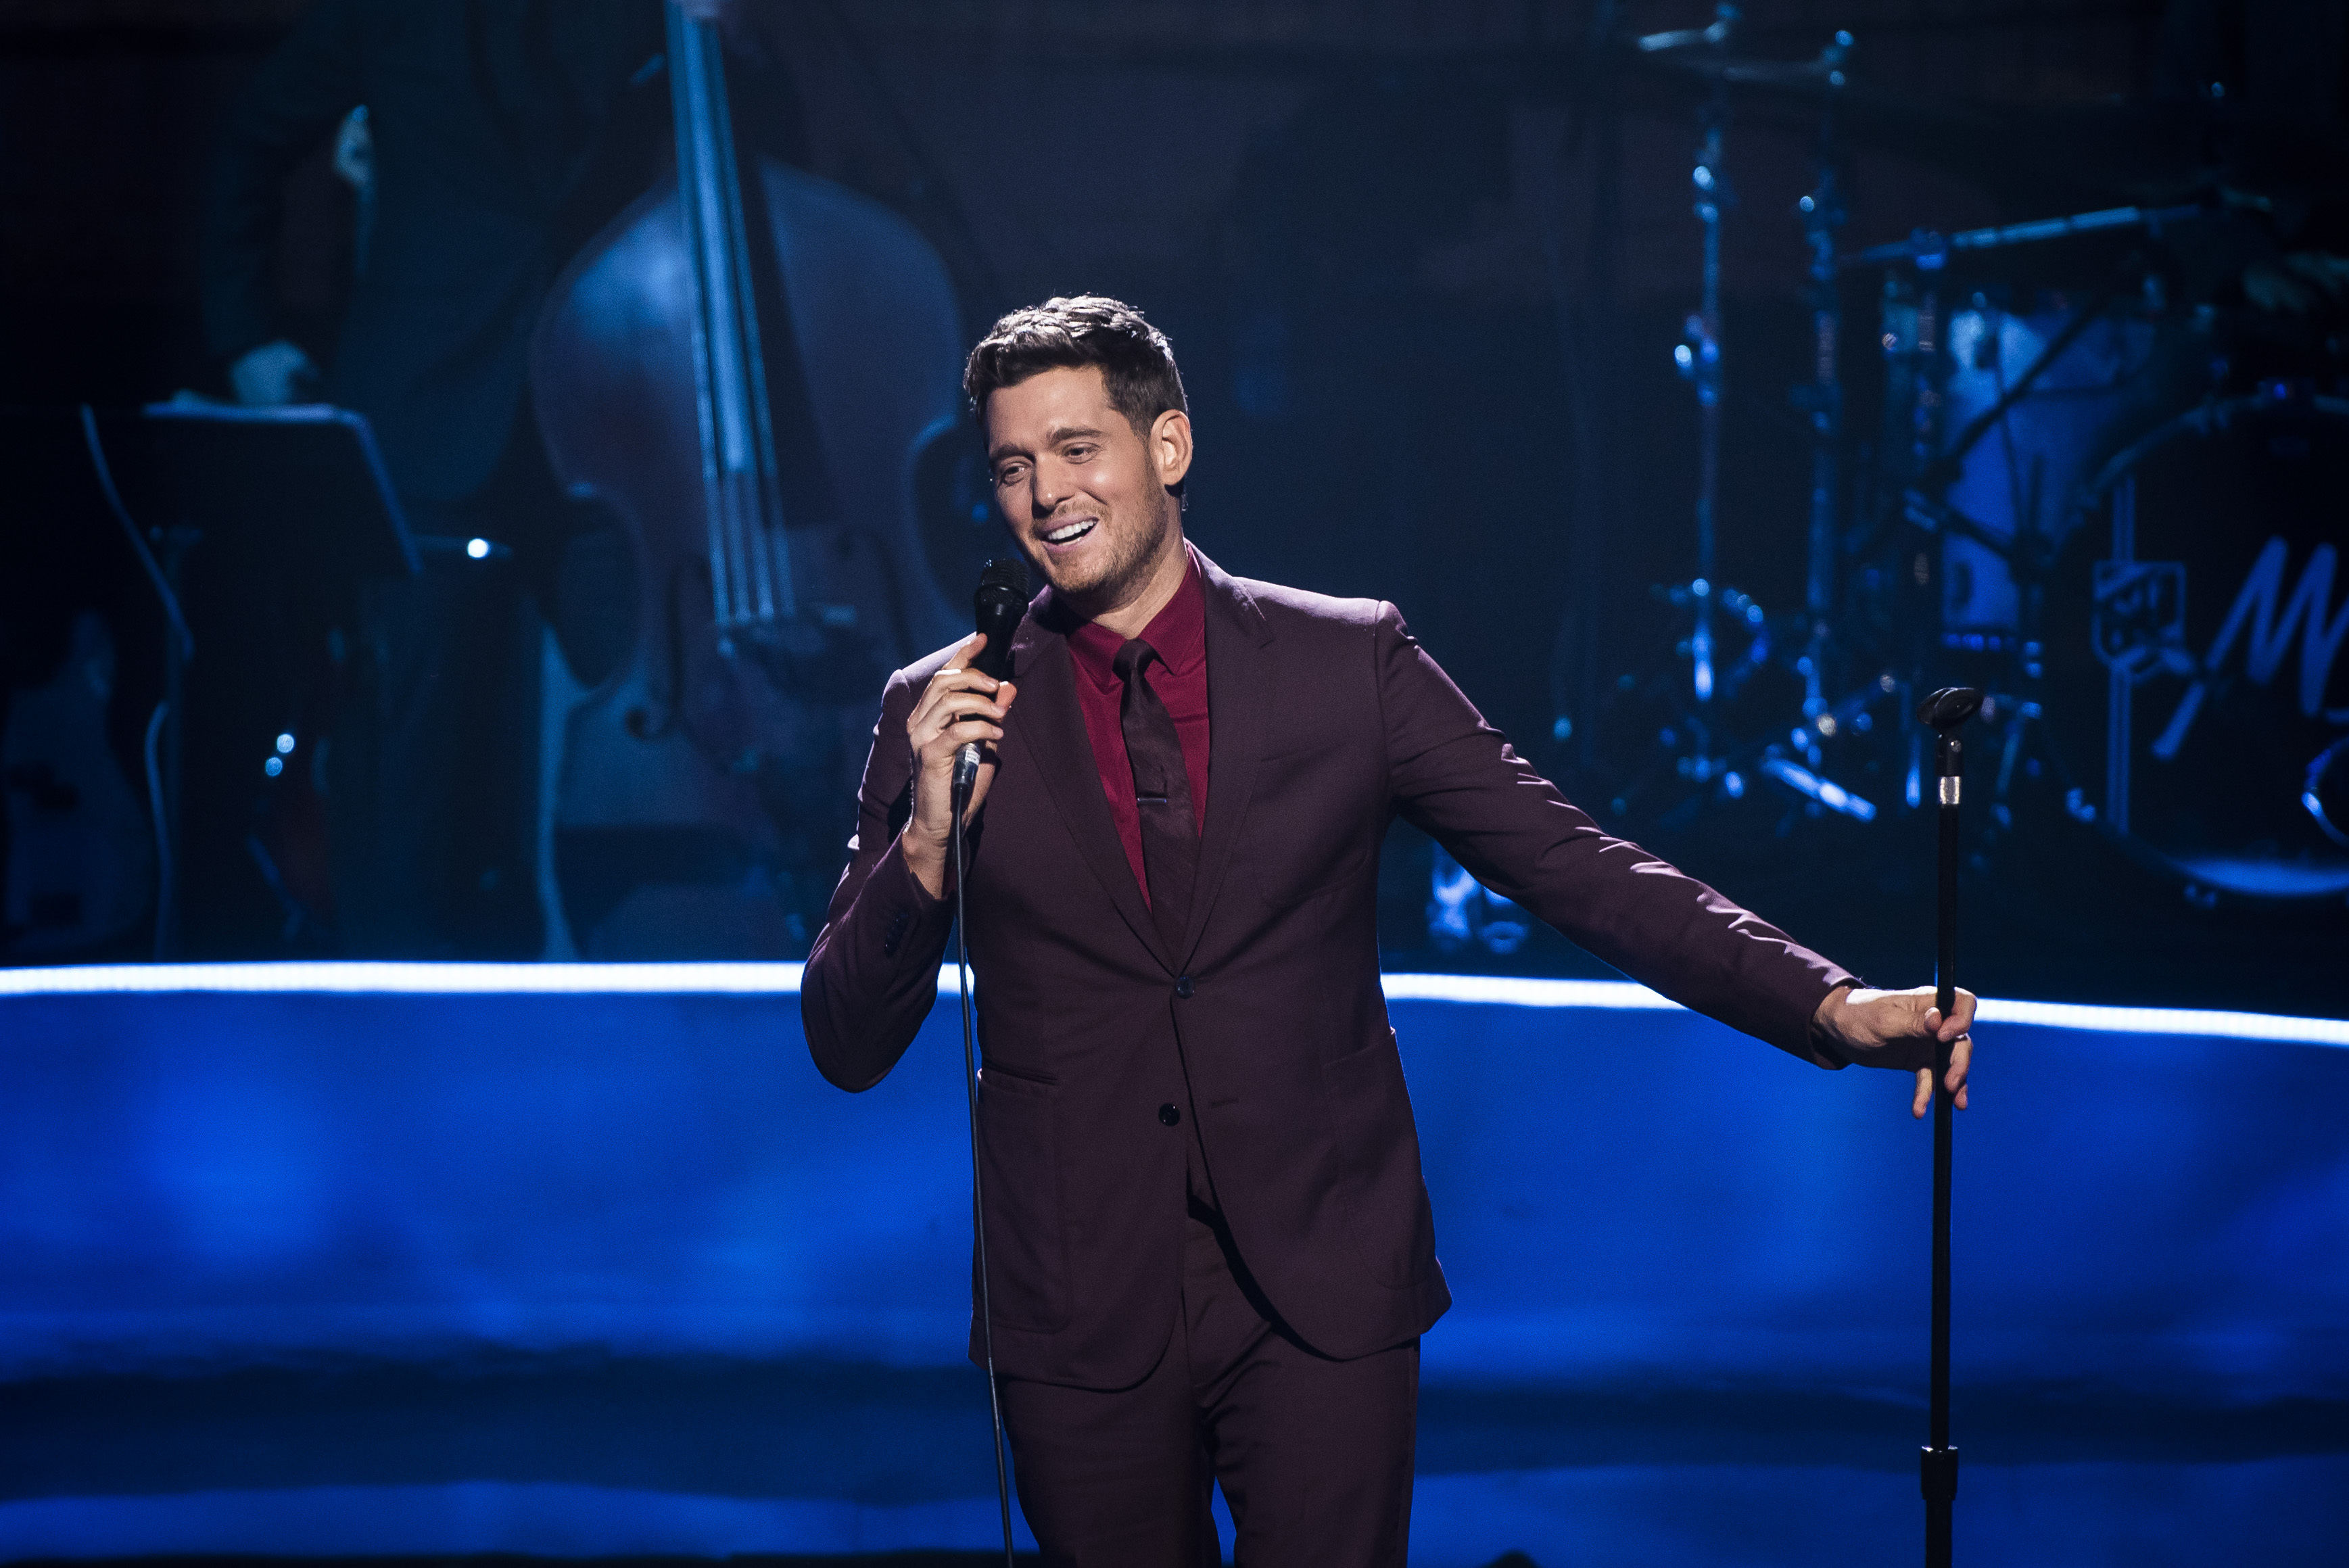 Michael Buble reveals he is retiring from music following son's cancer battle